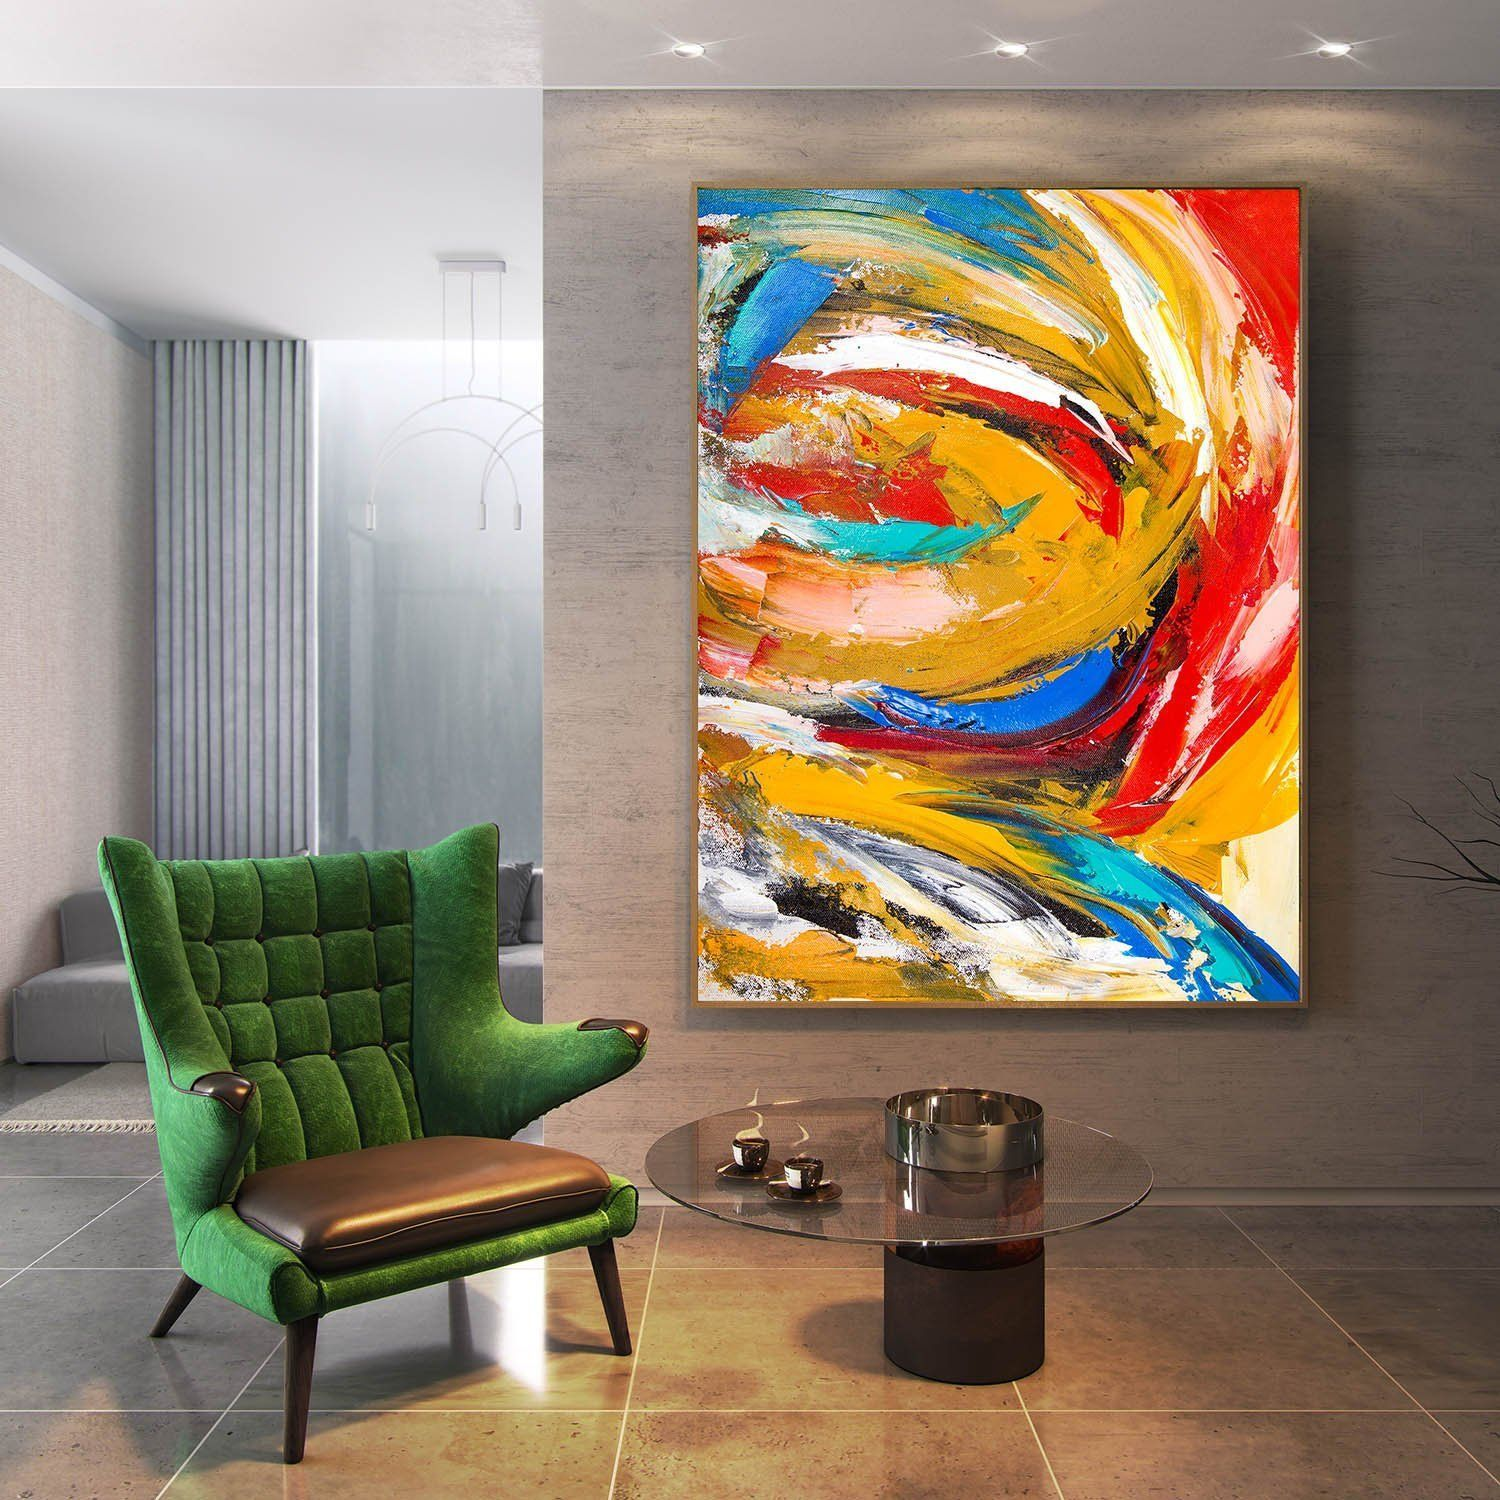 Extra Large Wall Art Original Textured Art Large Abstract Painting Xxl Canvas Art Abstract Wall Modern Art Decor Modern Abstract Painting Abstract Art Painting